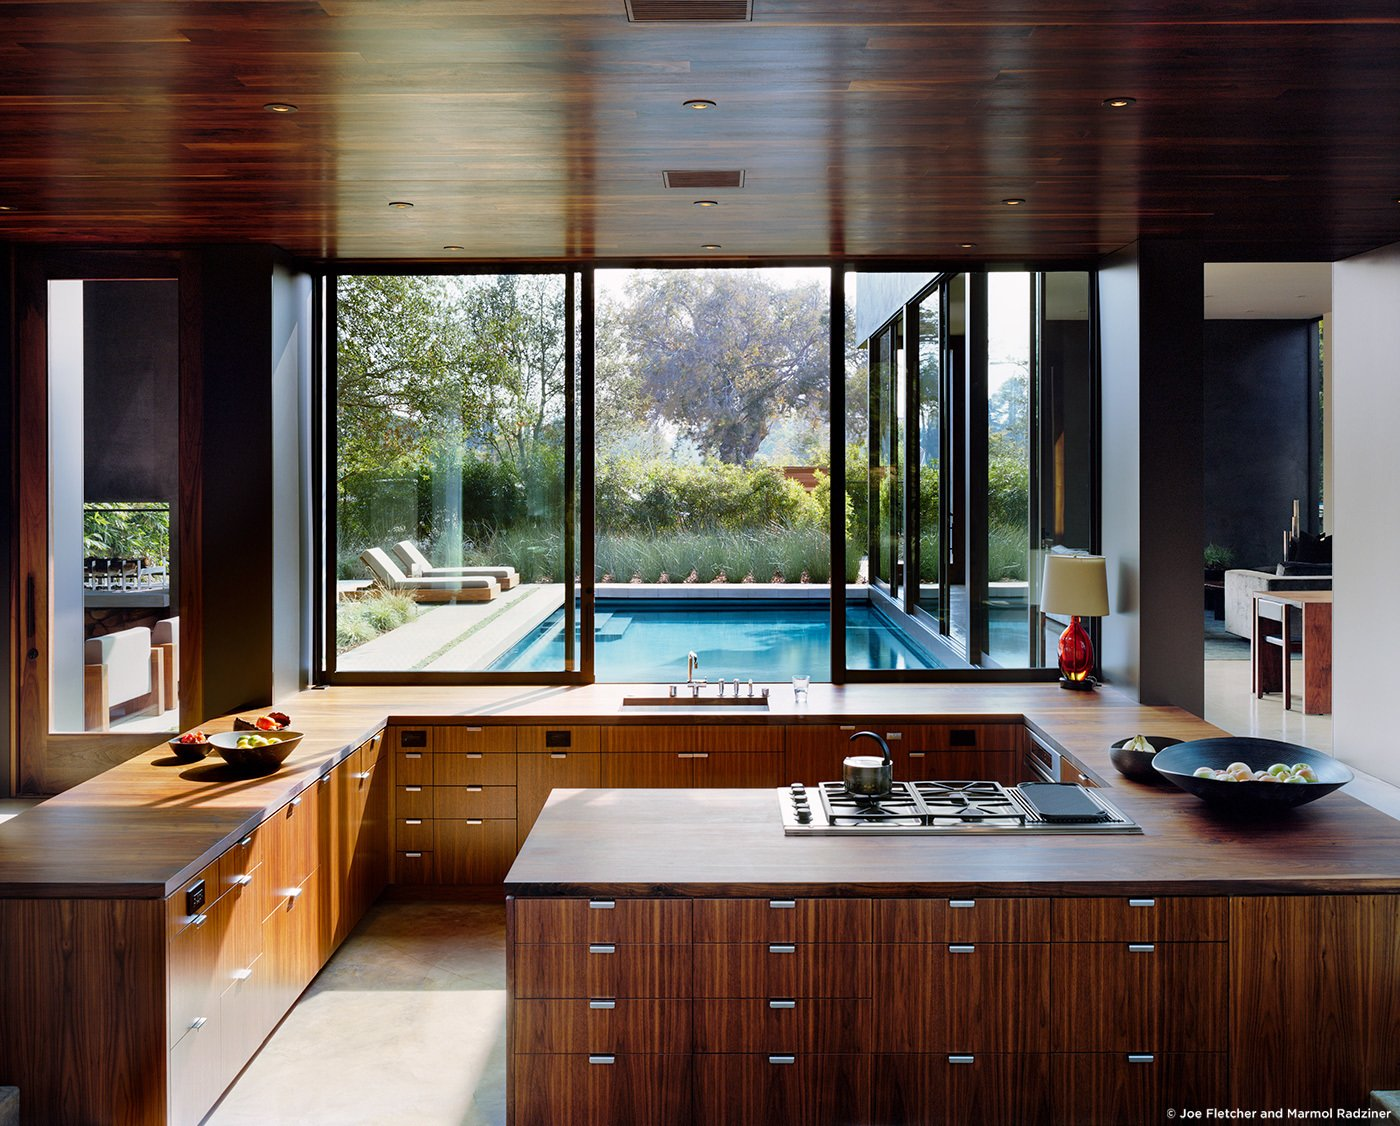 #ViennaWayResidence #modern #midcentury #inside #interior #windows #lighting #kitchen #wood #appliances #table #seating #counter #outdoor #exterior #pool #landscape #Venice #California #MarmolRadziner  Vienna Way Residence by Marmol Radziner